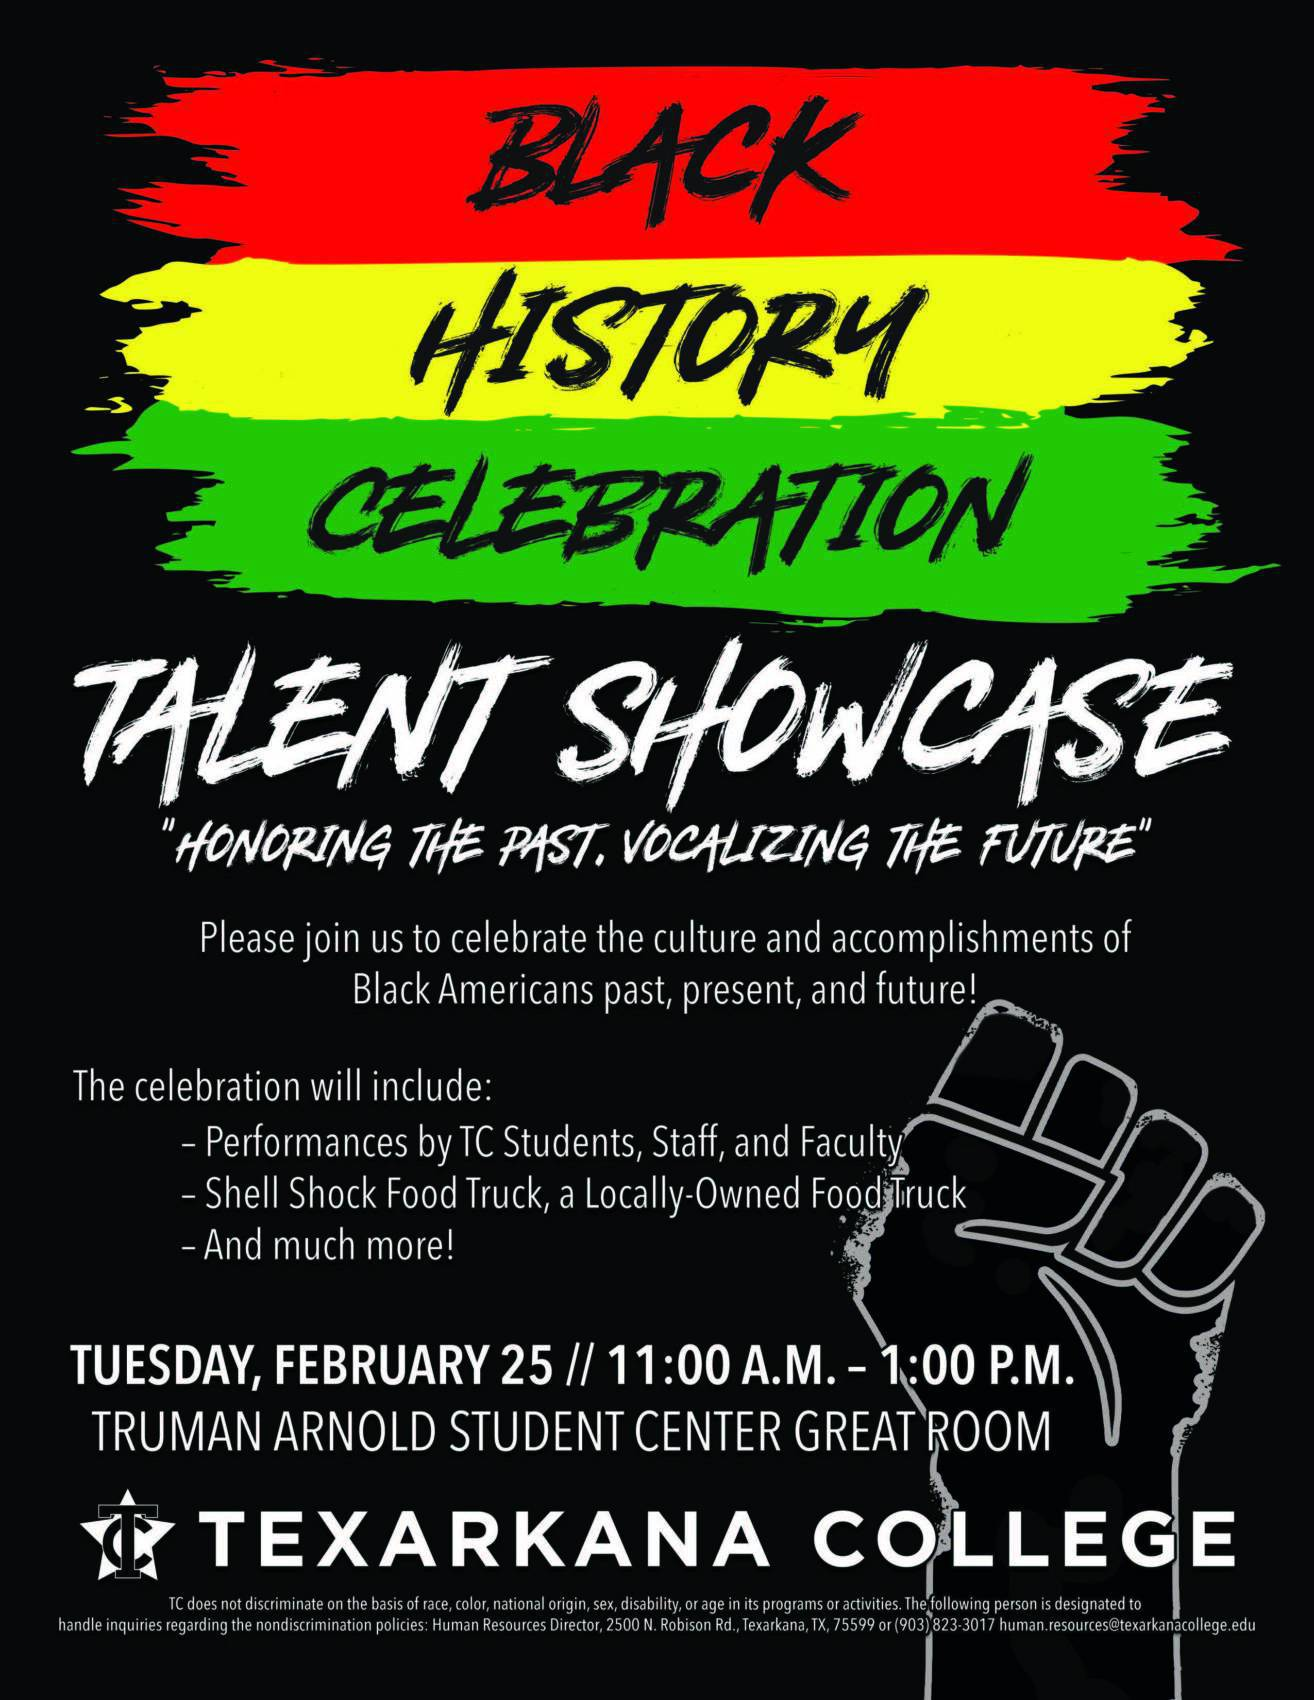 Black History Celebration Talent Showcase 2020